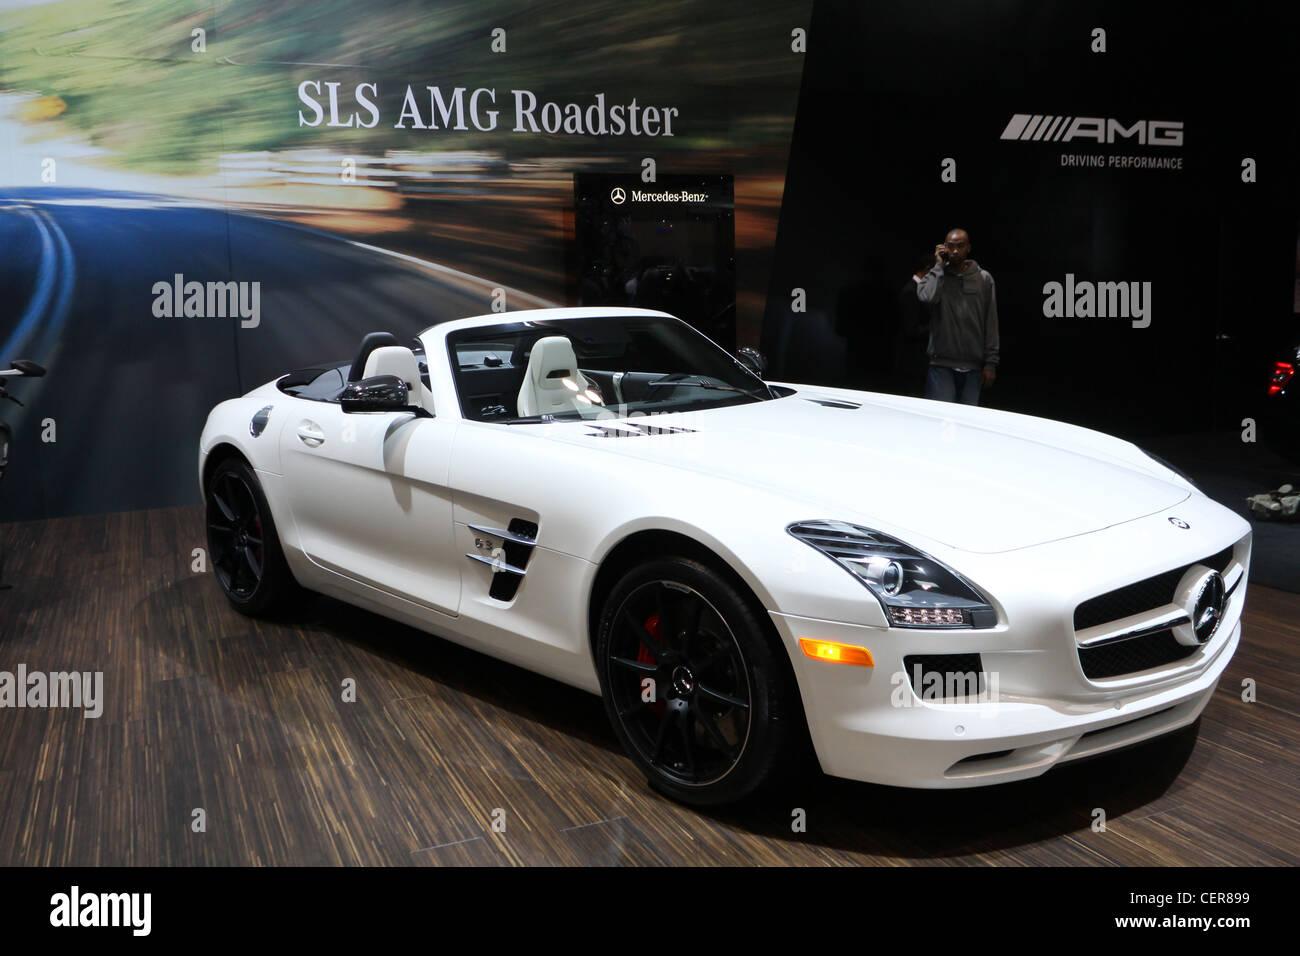 white convertible car mercedes benz sls amg roadster stock